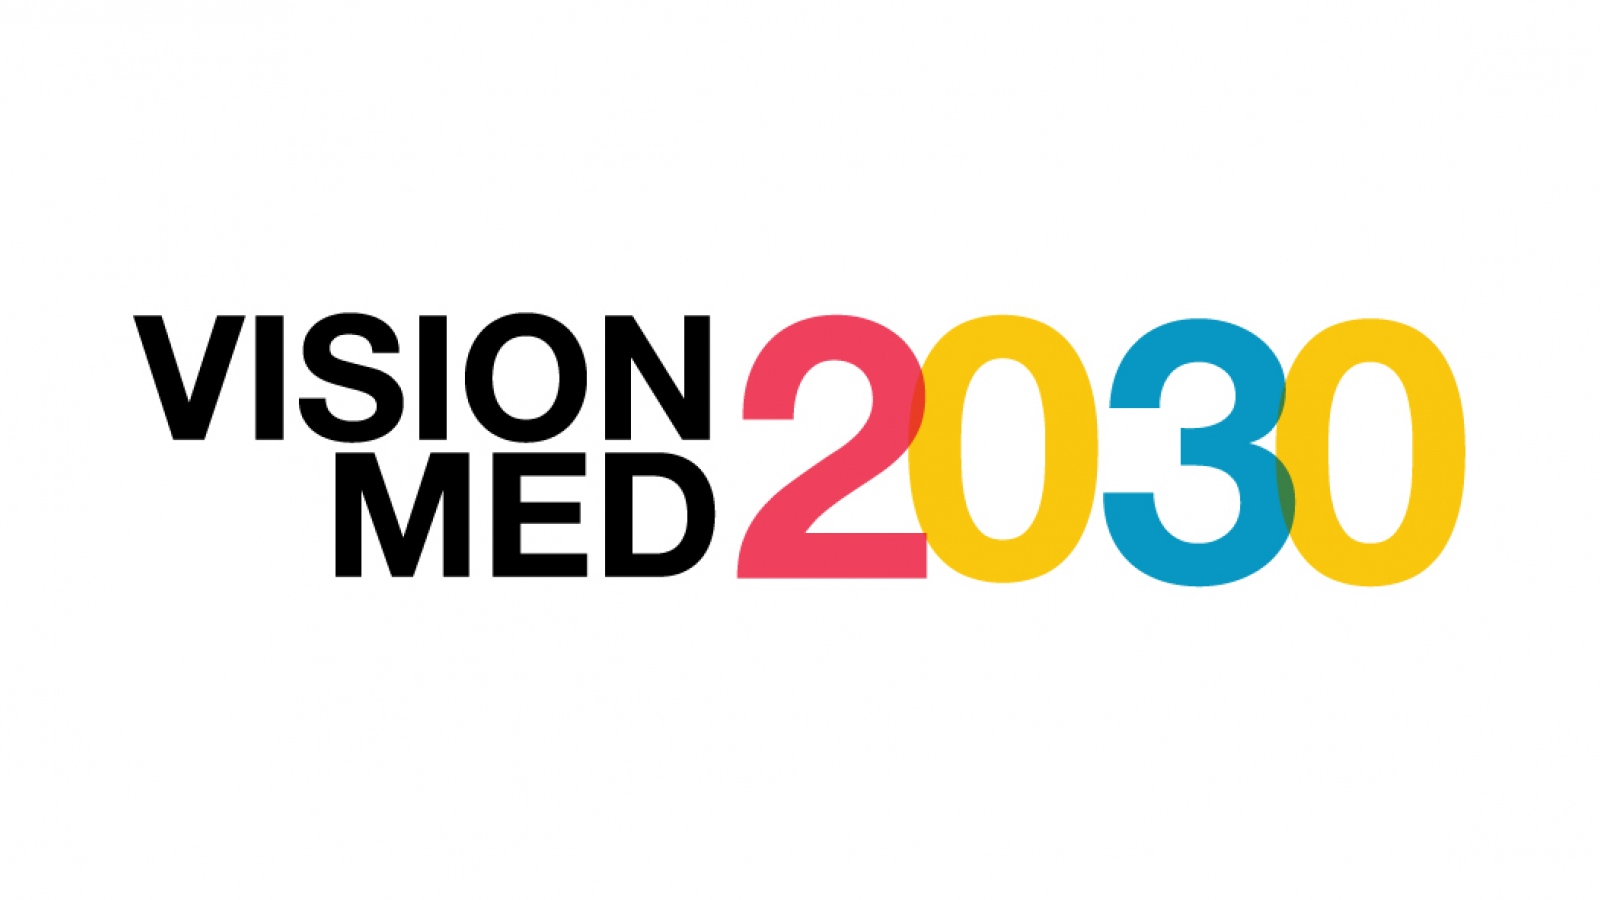 visionmed2030